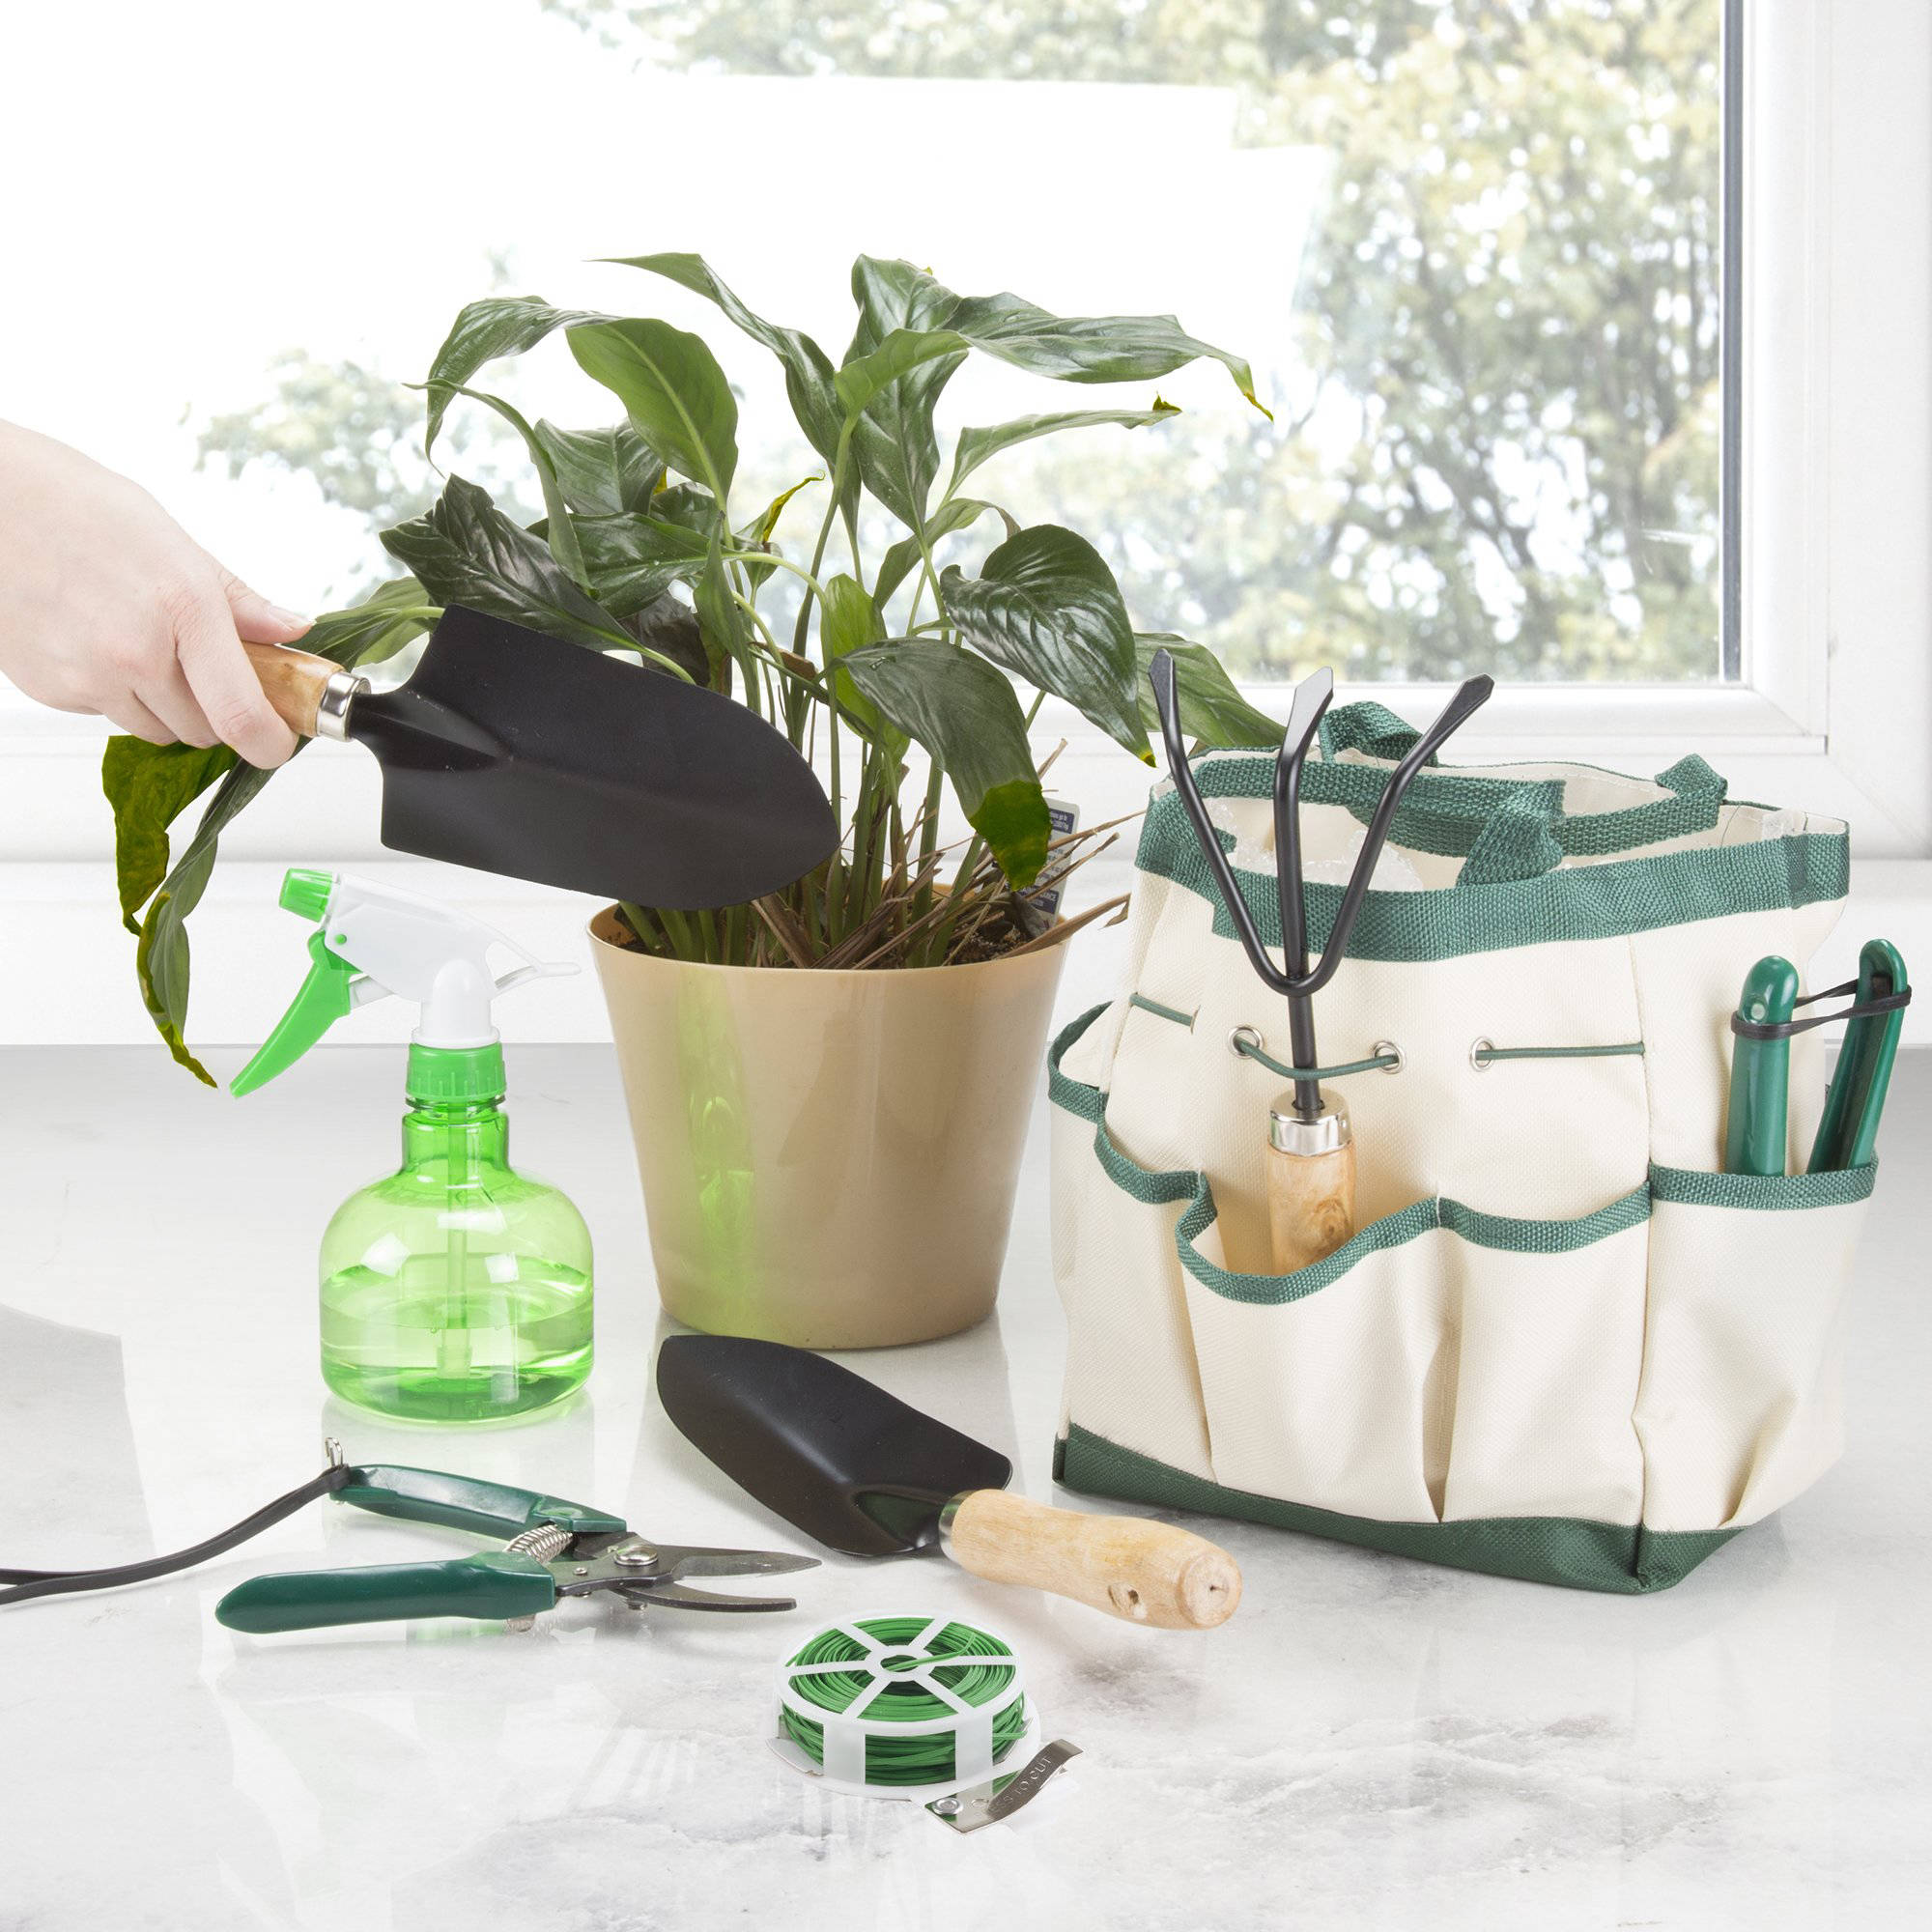 Pure Garden 8-Piece Garden Tool and Tote Set by Trademark Global LLC